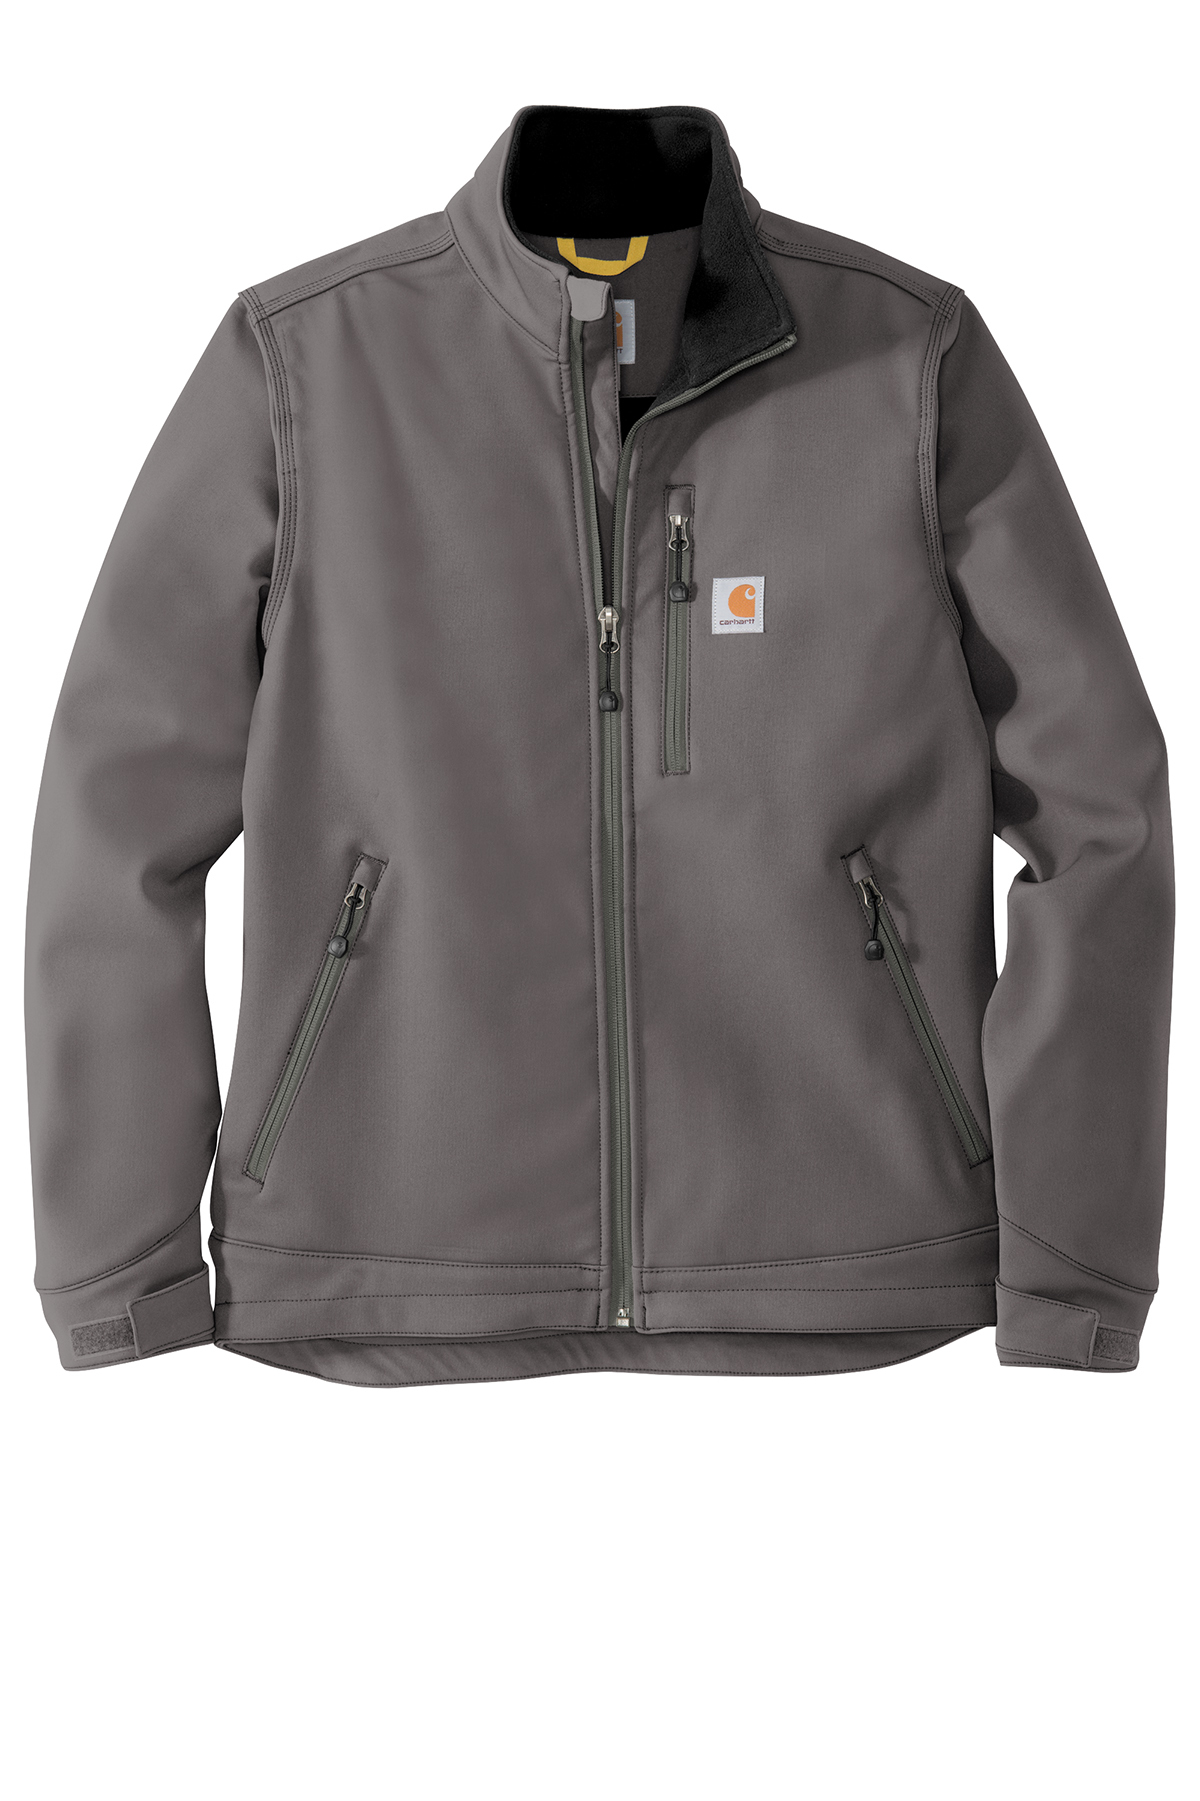 6f9a9f42480 ... Carhartt ® Crowley Soft Shell Jacket. A maximum of 8 logos have been  uploaded. Please remove a logo from My Logos to continue